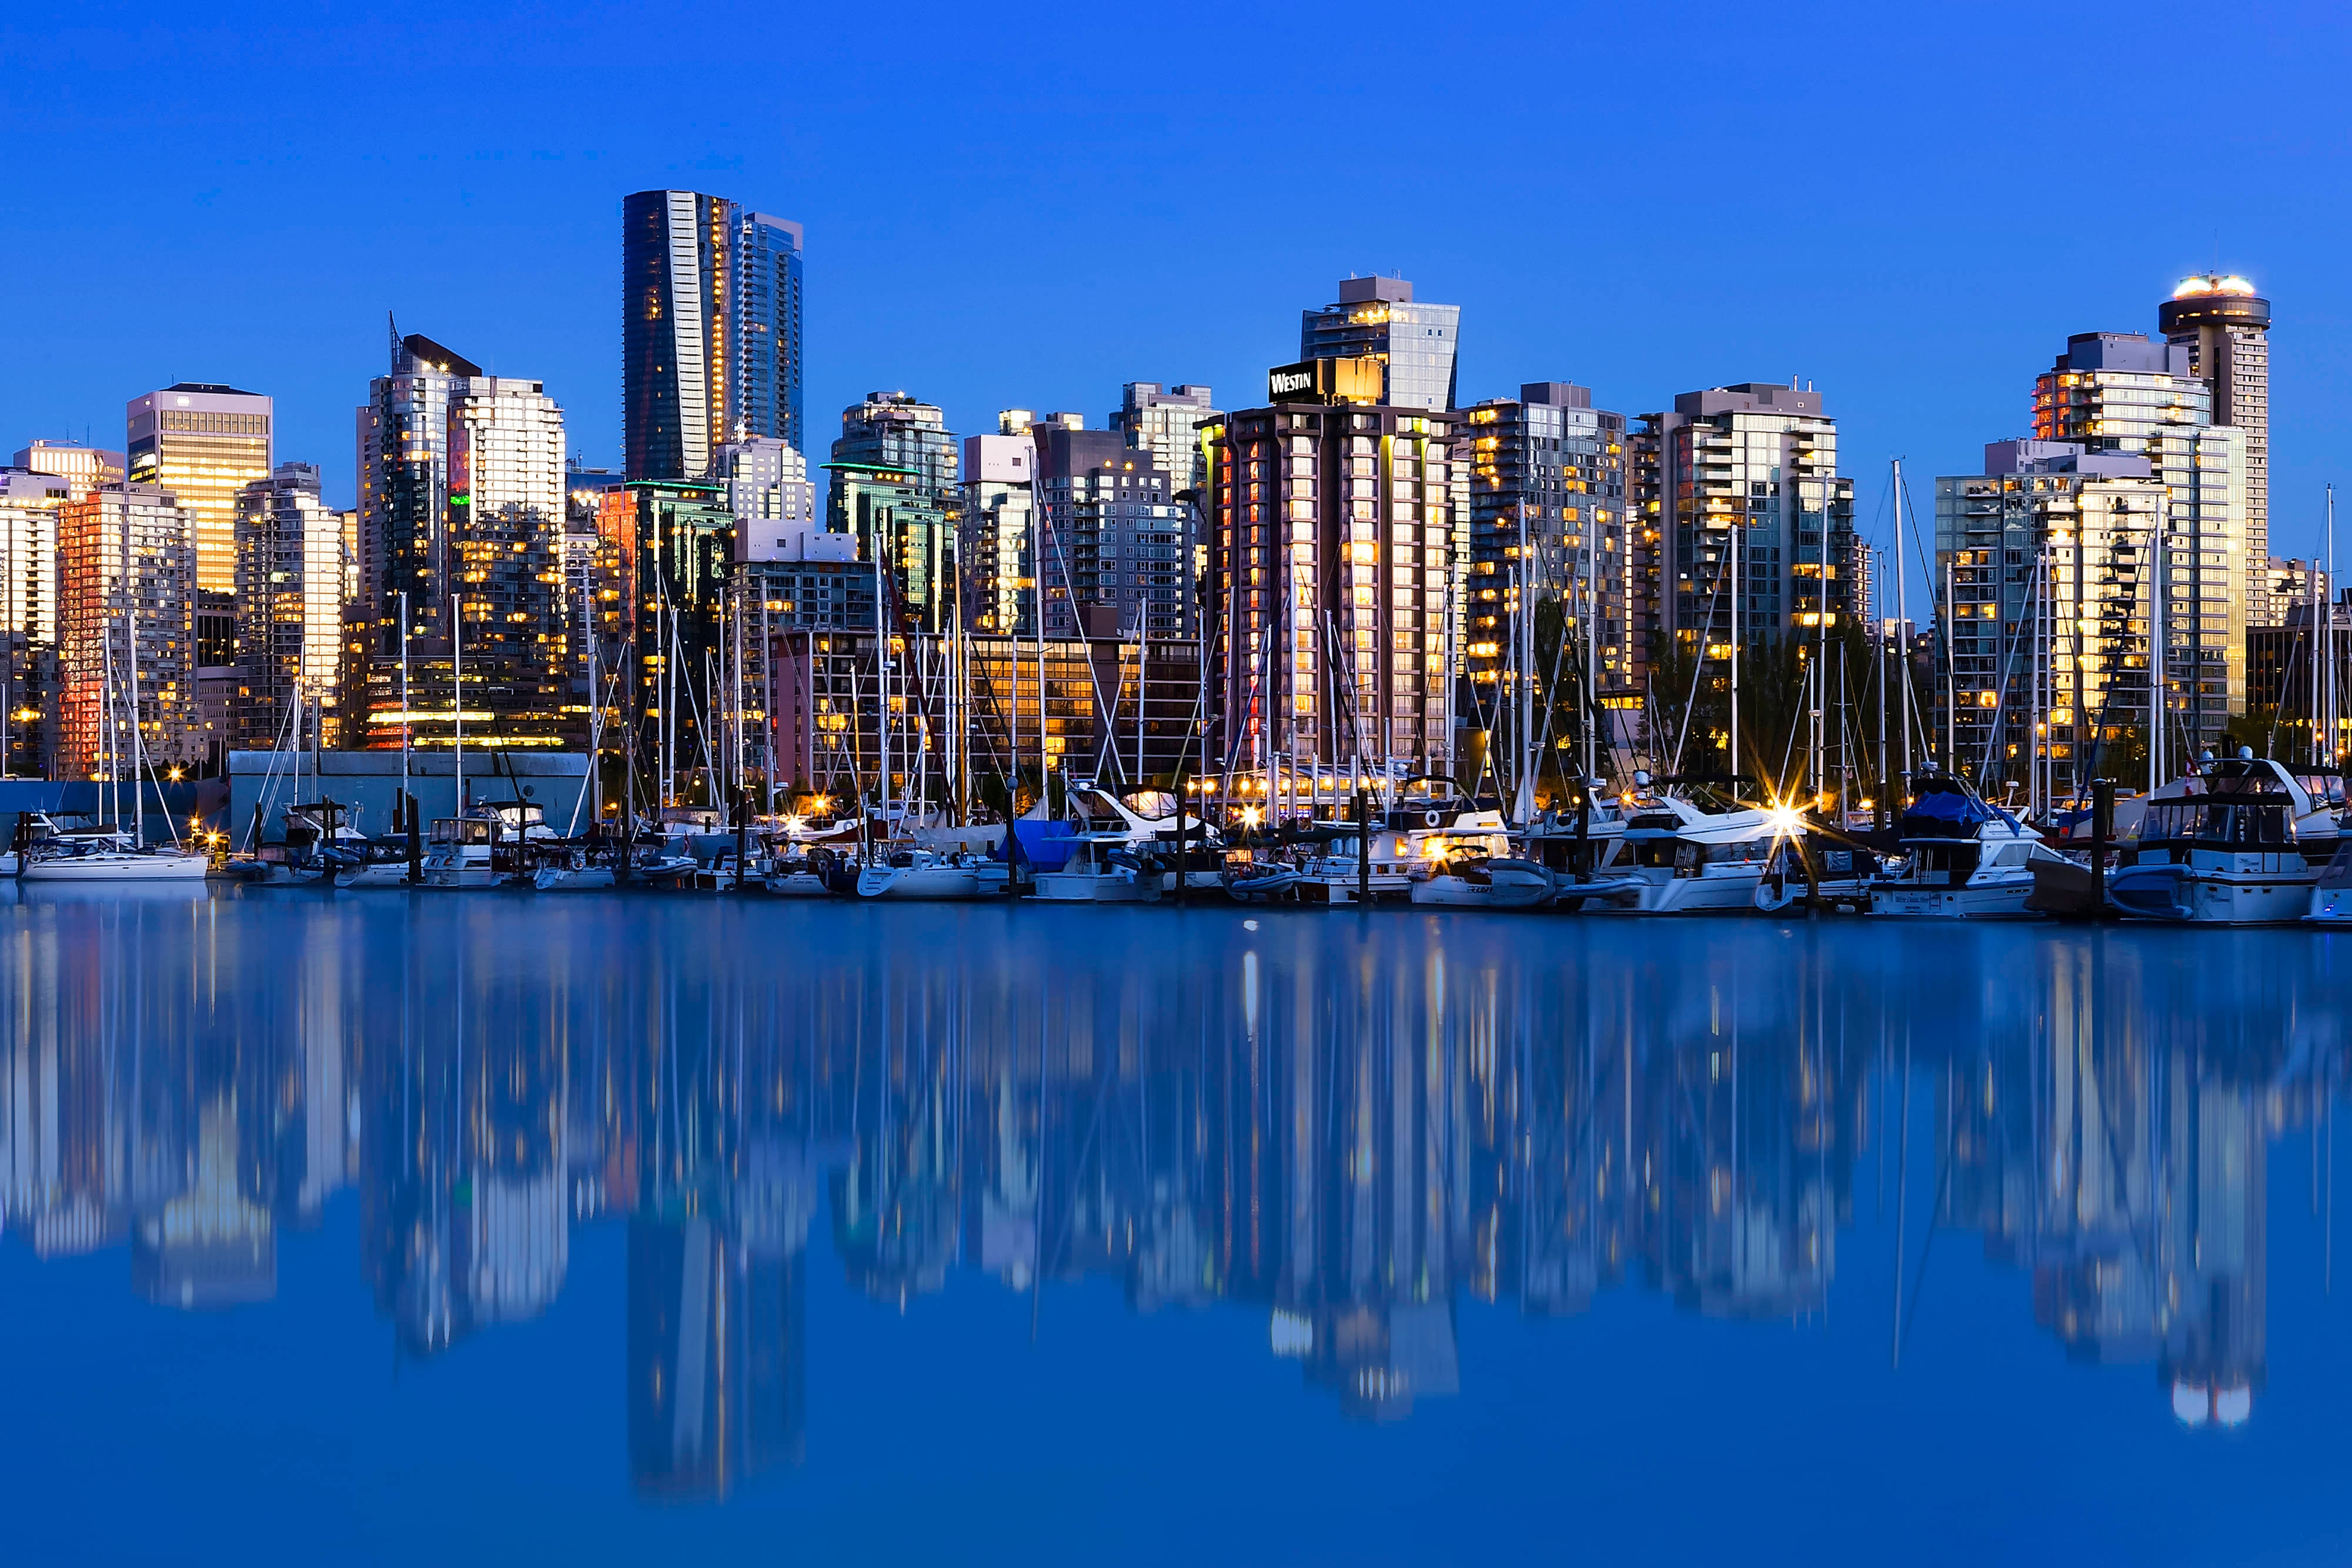 VancouverSkyline and Exterior